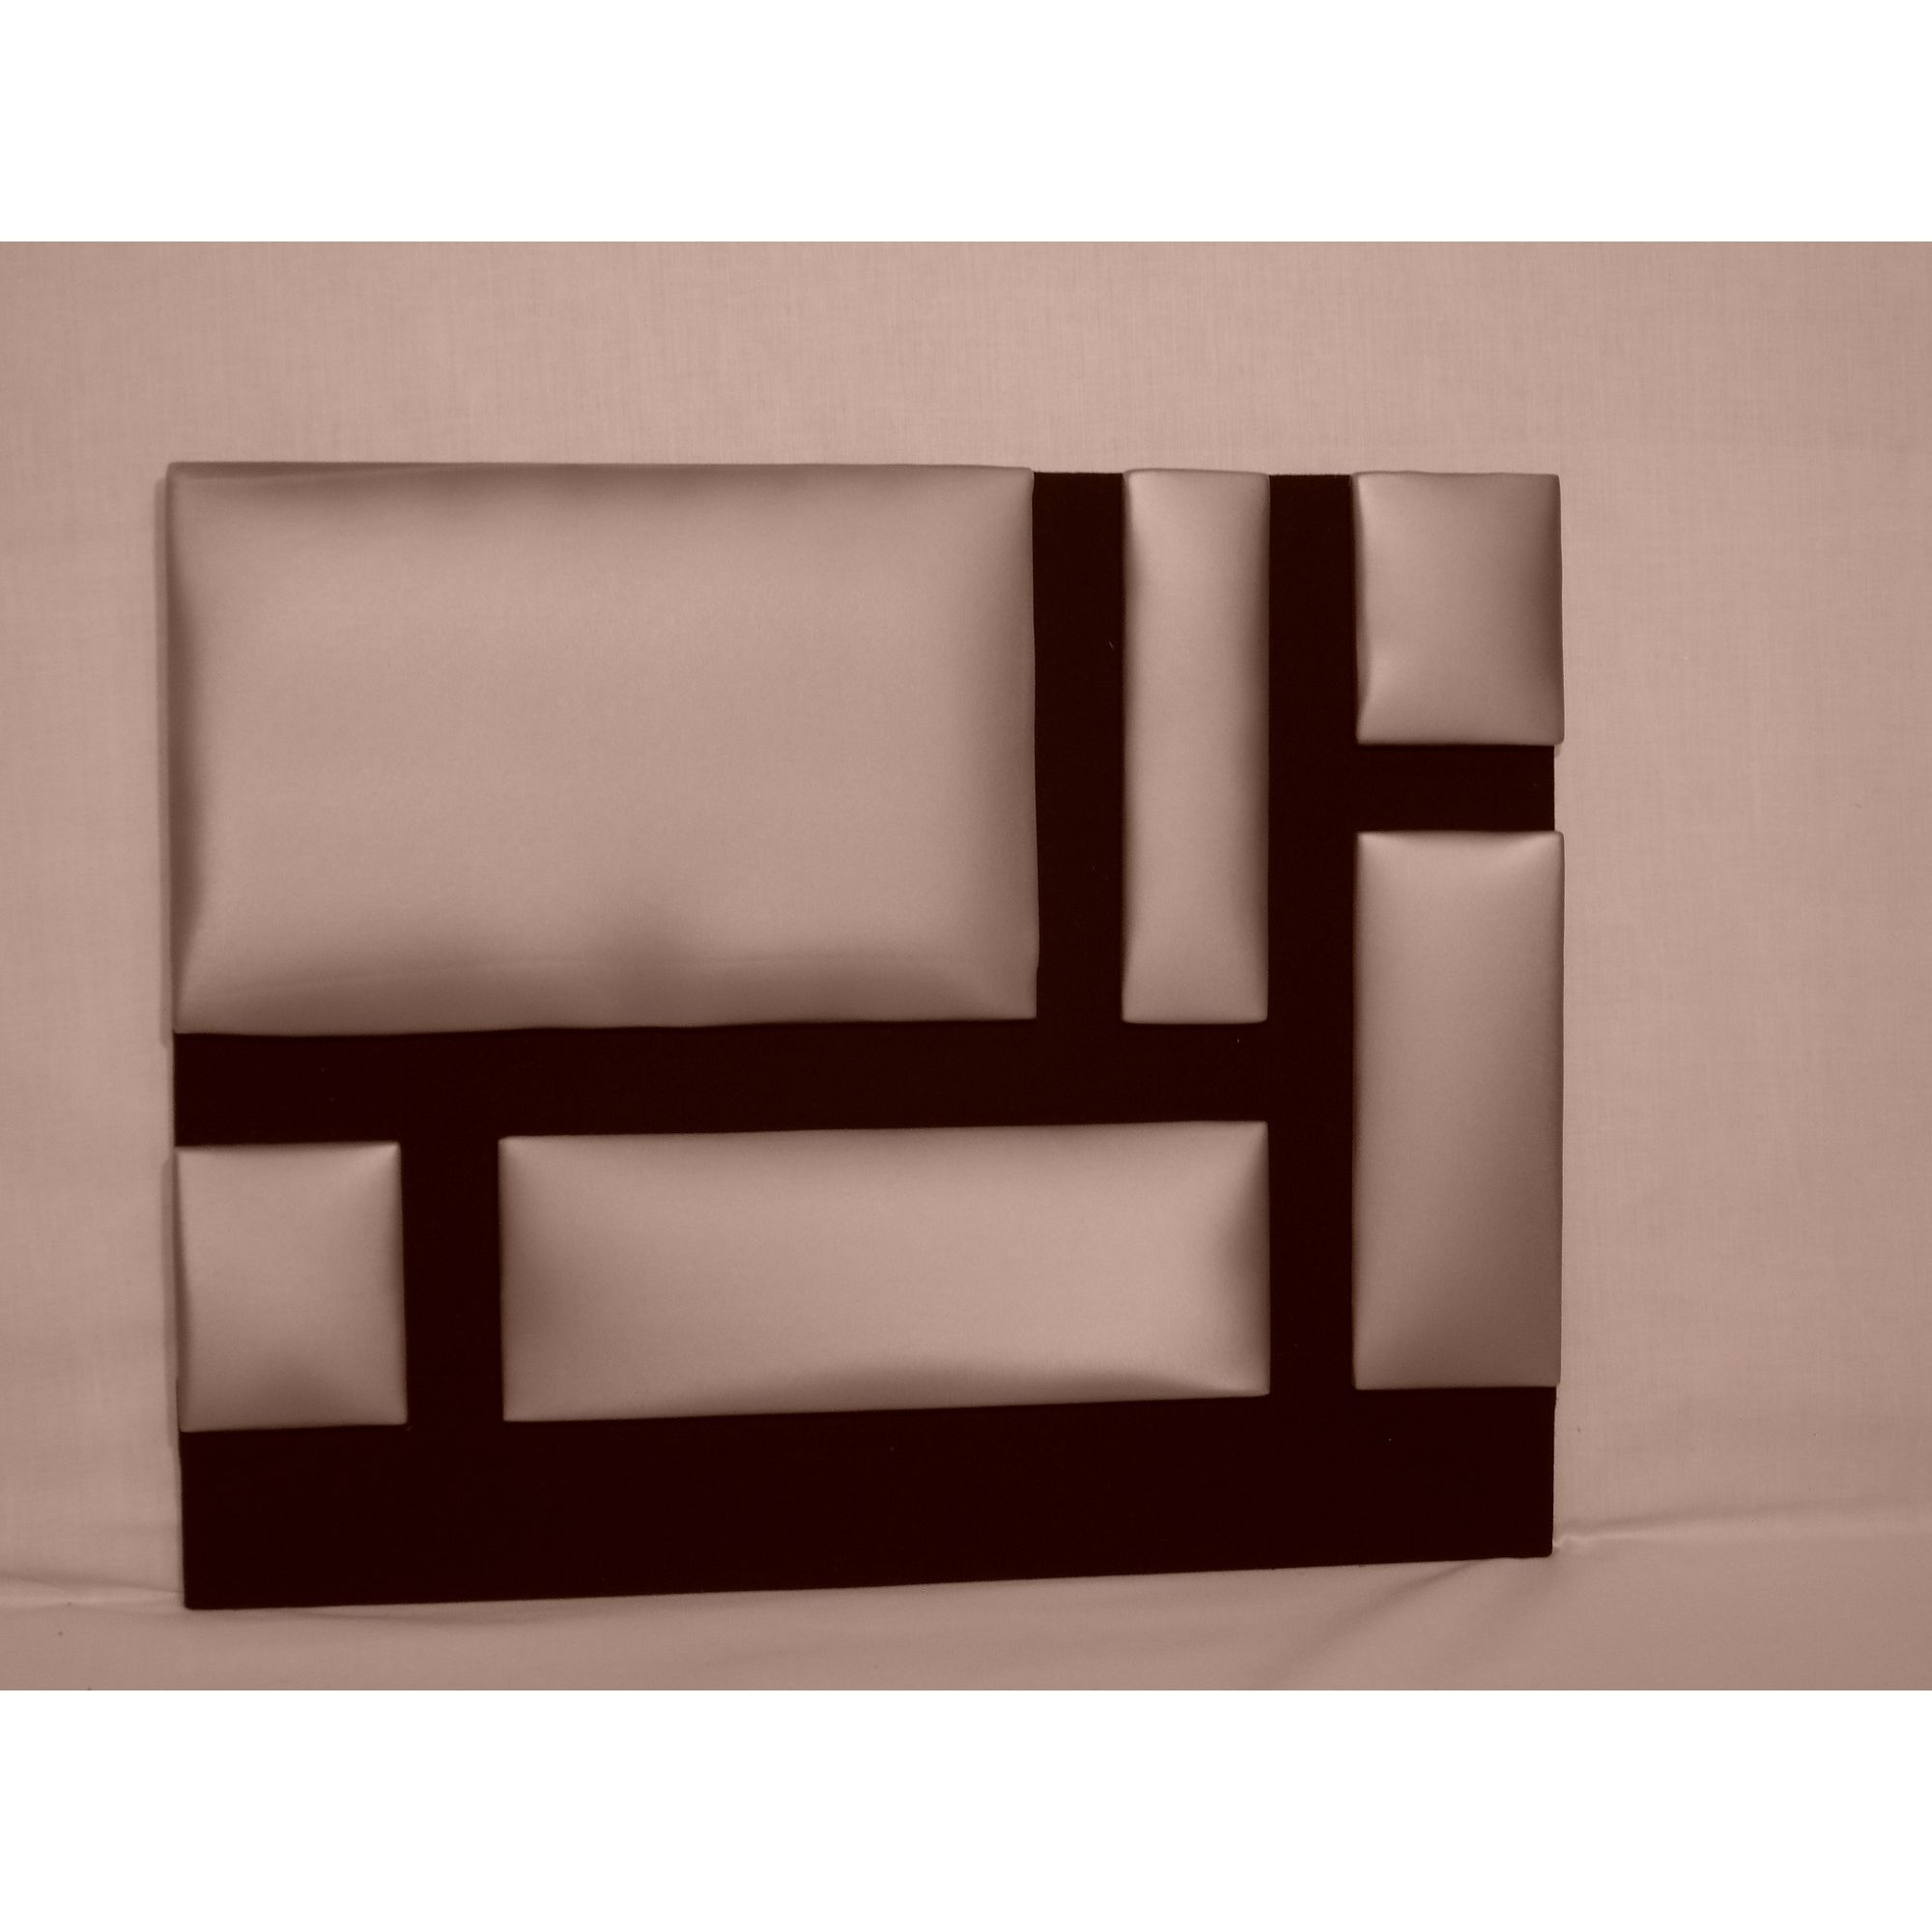 Headboard Solutions Mondrian Headboard - Apollo Dewberry - Double at Tesco Direct